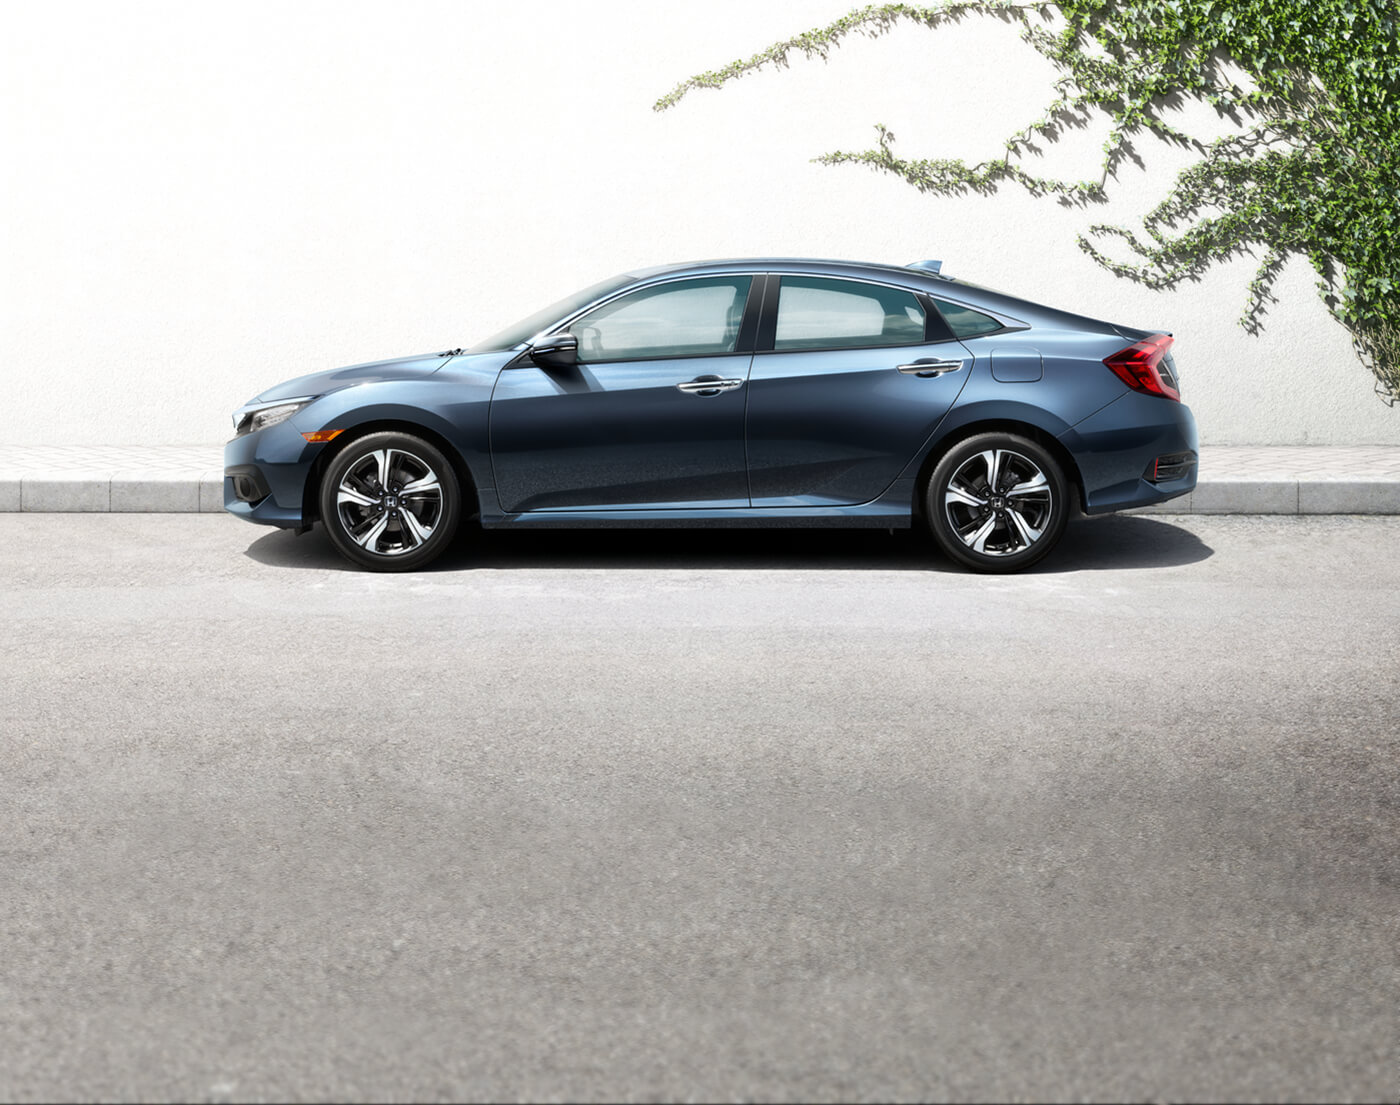 2017 honda civic north georgia honda dealers for Honda carland service